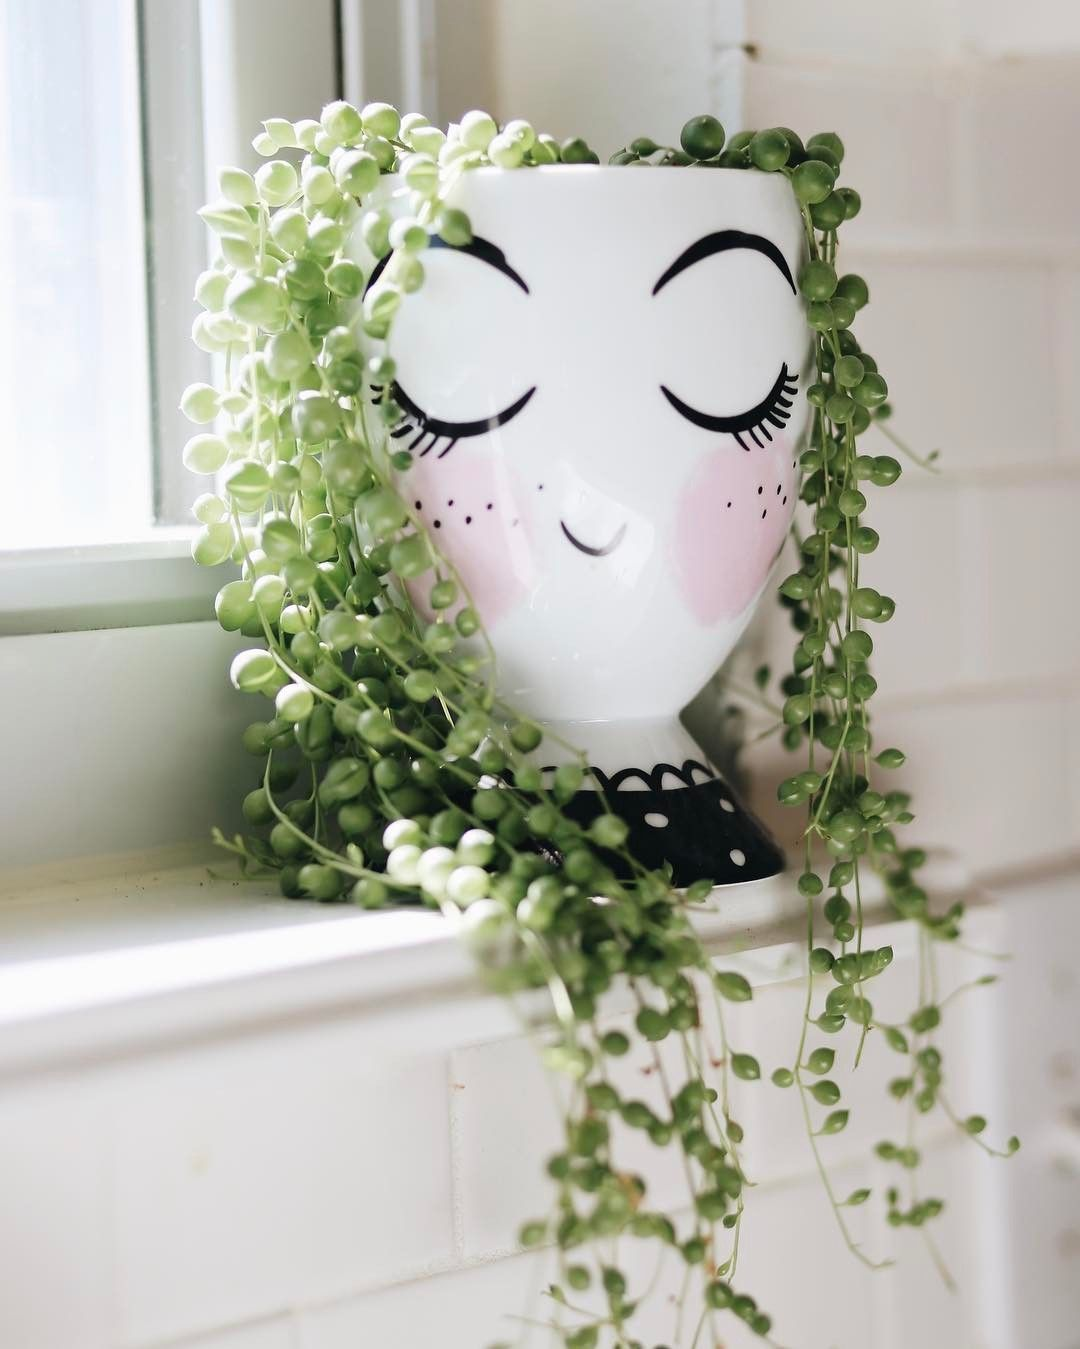 String of pearls could be cool in my buddha planters plants